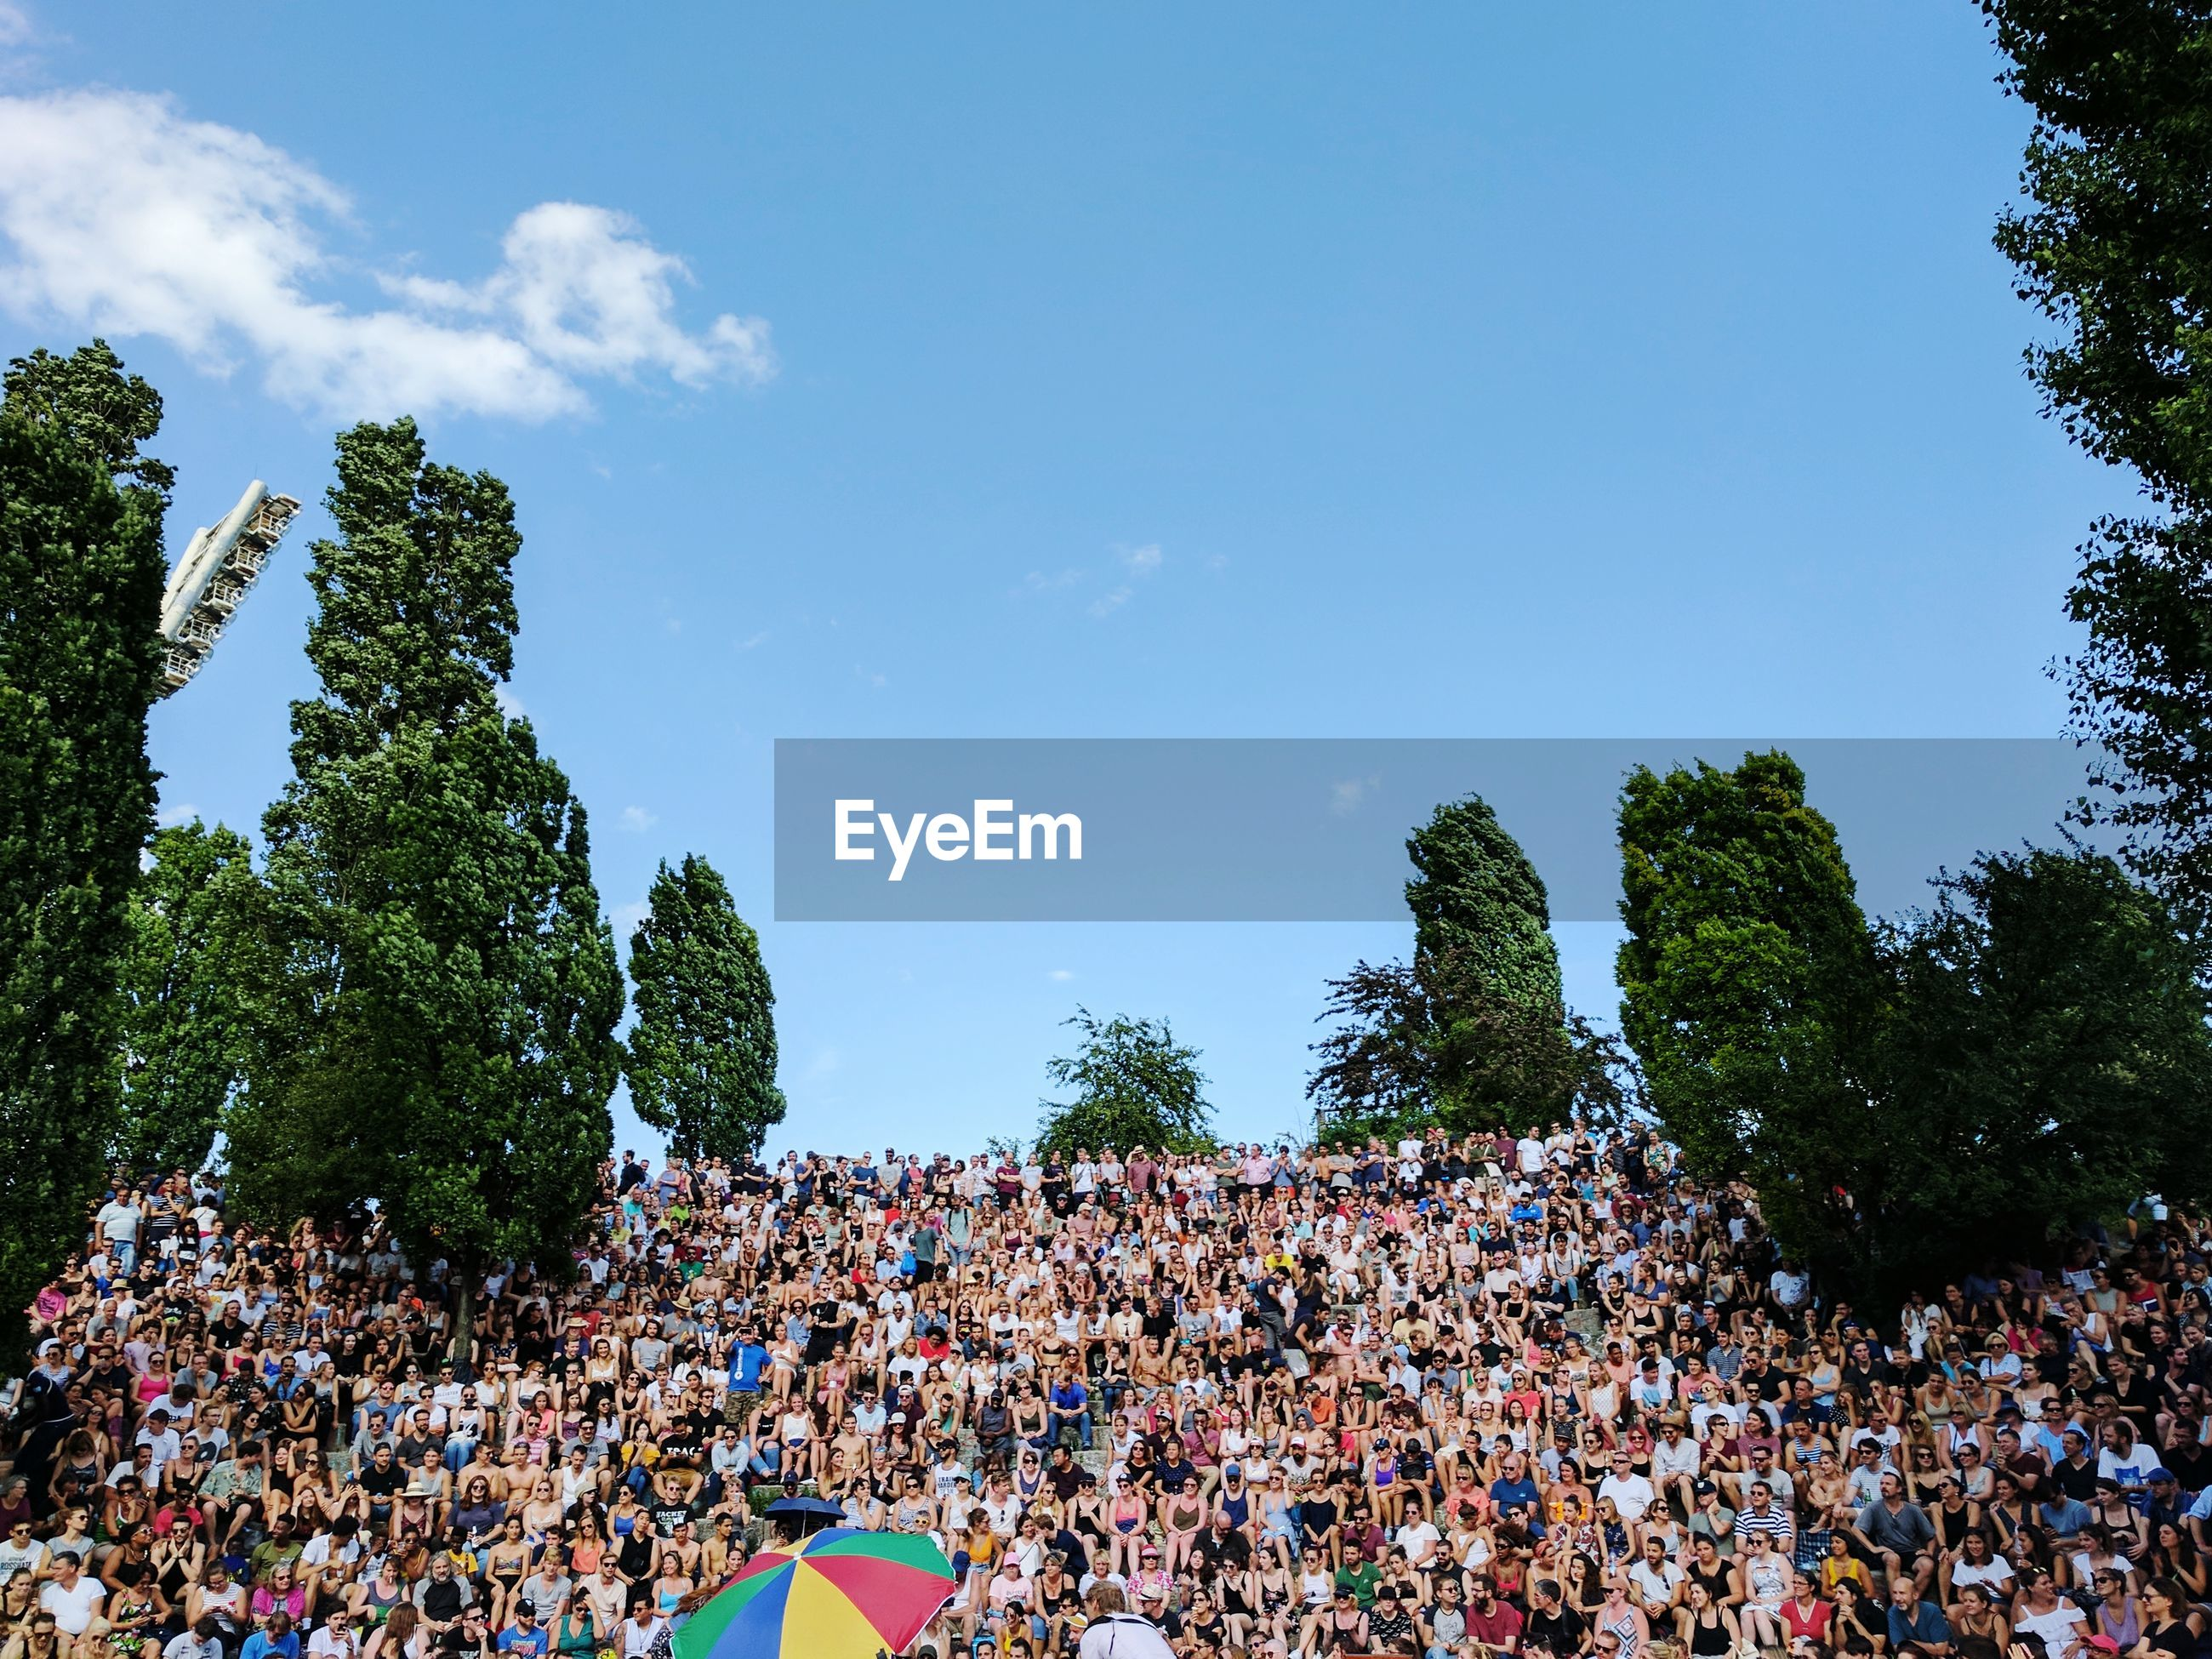 Audience at mauerpark against sky